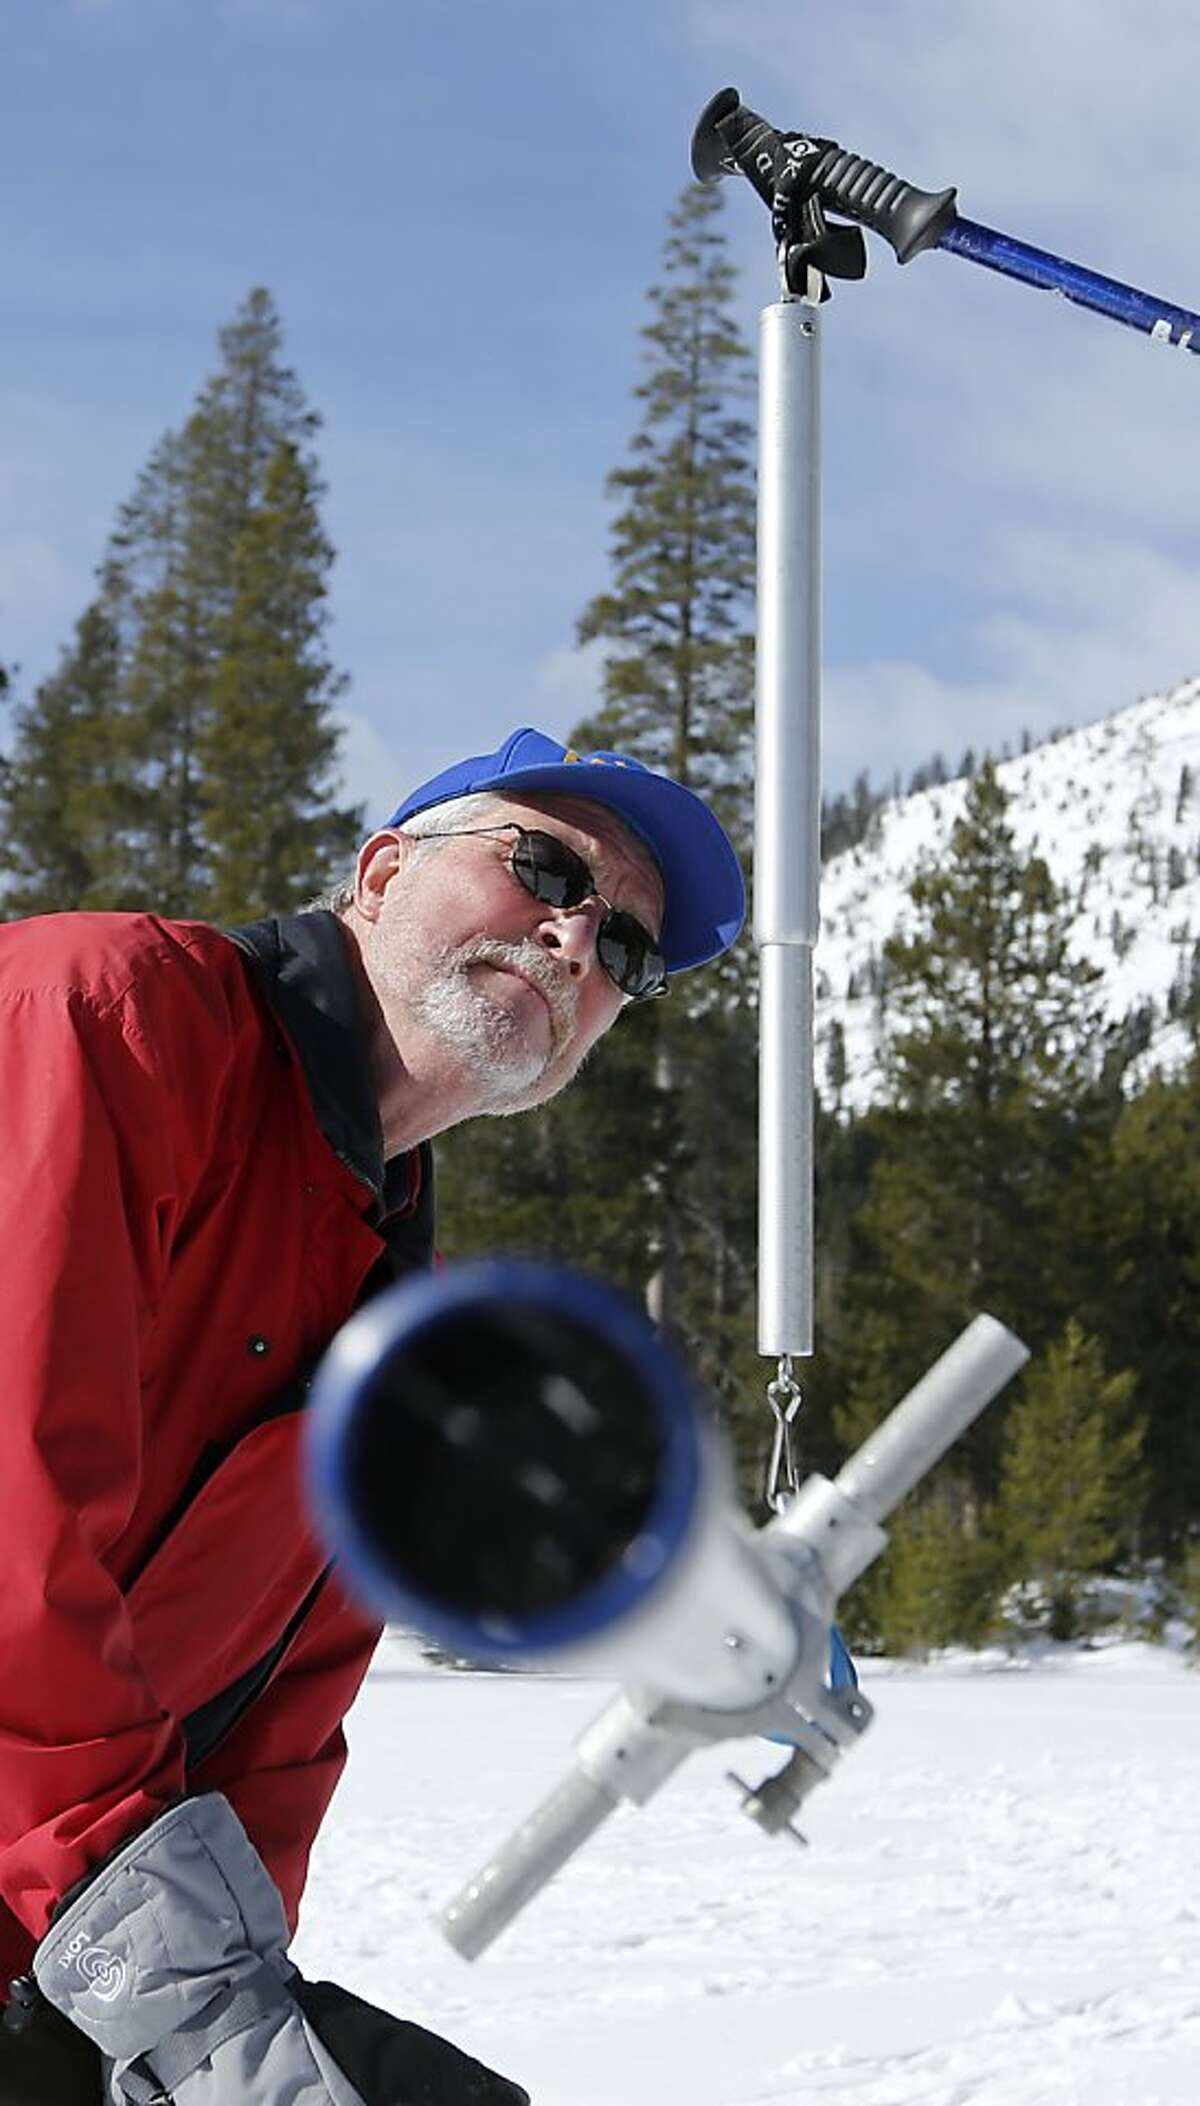 Frank Gehrke, chief of snow surveys for the Department of Water Resources, checks the weight of the snowpack survey tube as he conducts the second snow survey of the year at Echo Summit, Calif., Tuesday, Jan. 29, 2013. Surveyors have confirmed what many feared after a relatively dry January - the water content of snow that has accumulated in the Sierra is slightly below average for this time of year. (AP Photo/Rich Pedroncelli)